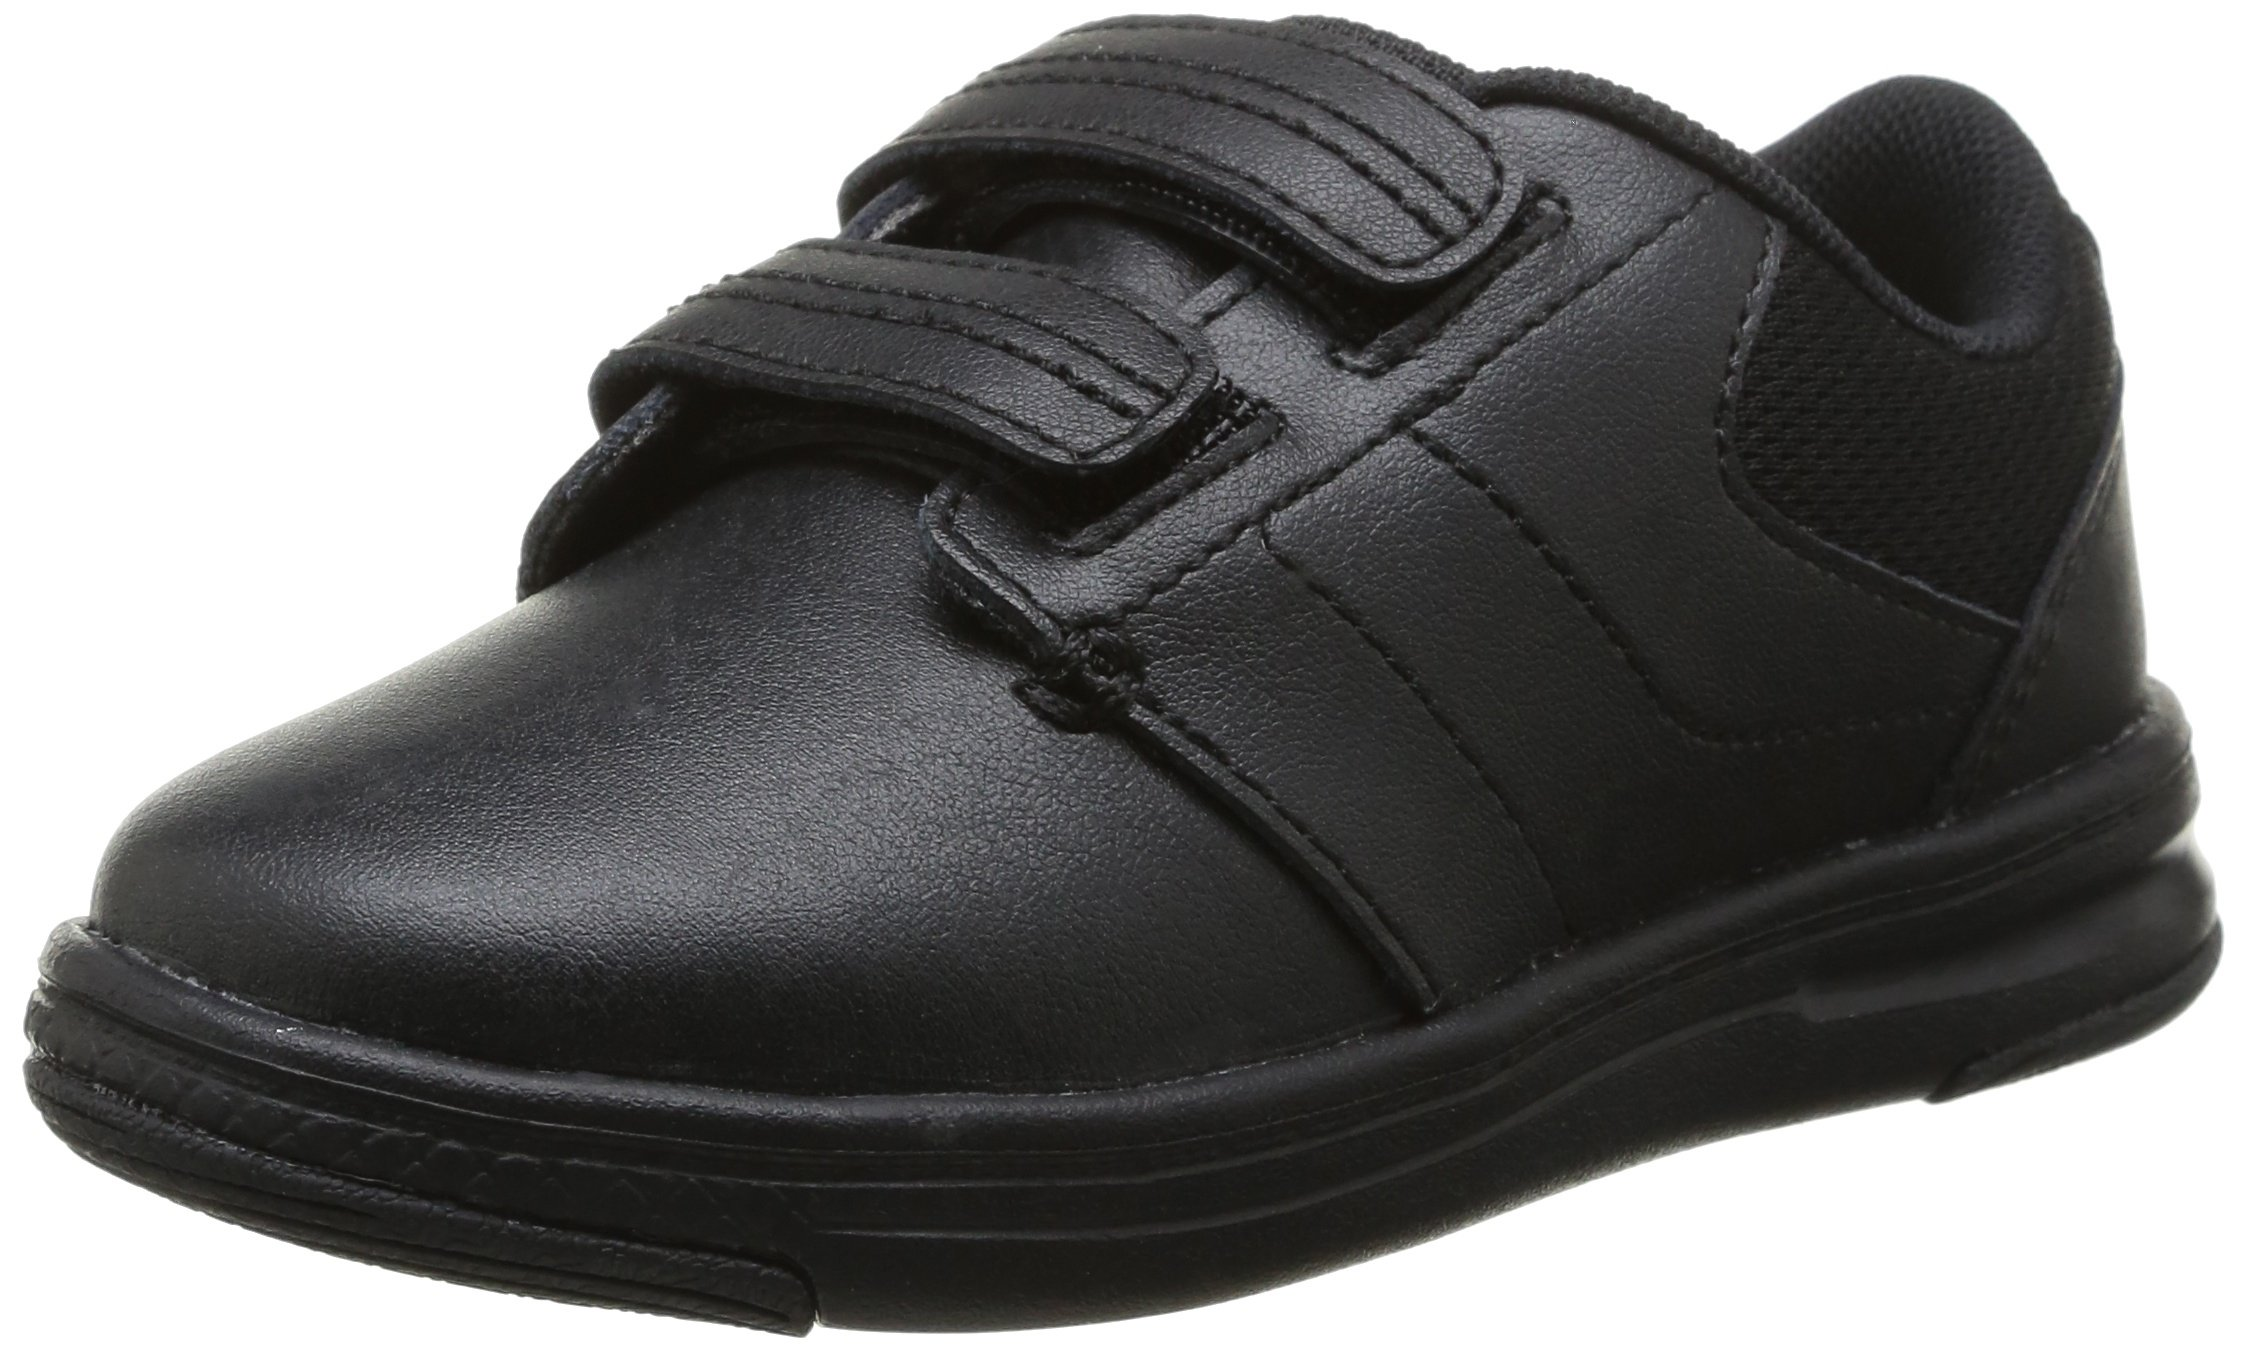 Crocs Uniform Shoe P Flat (Toddler/Little Kid)